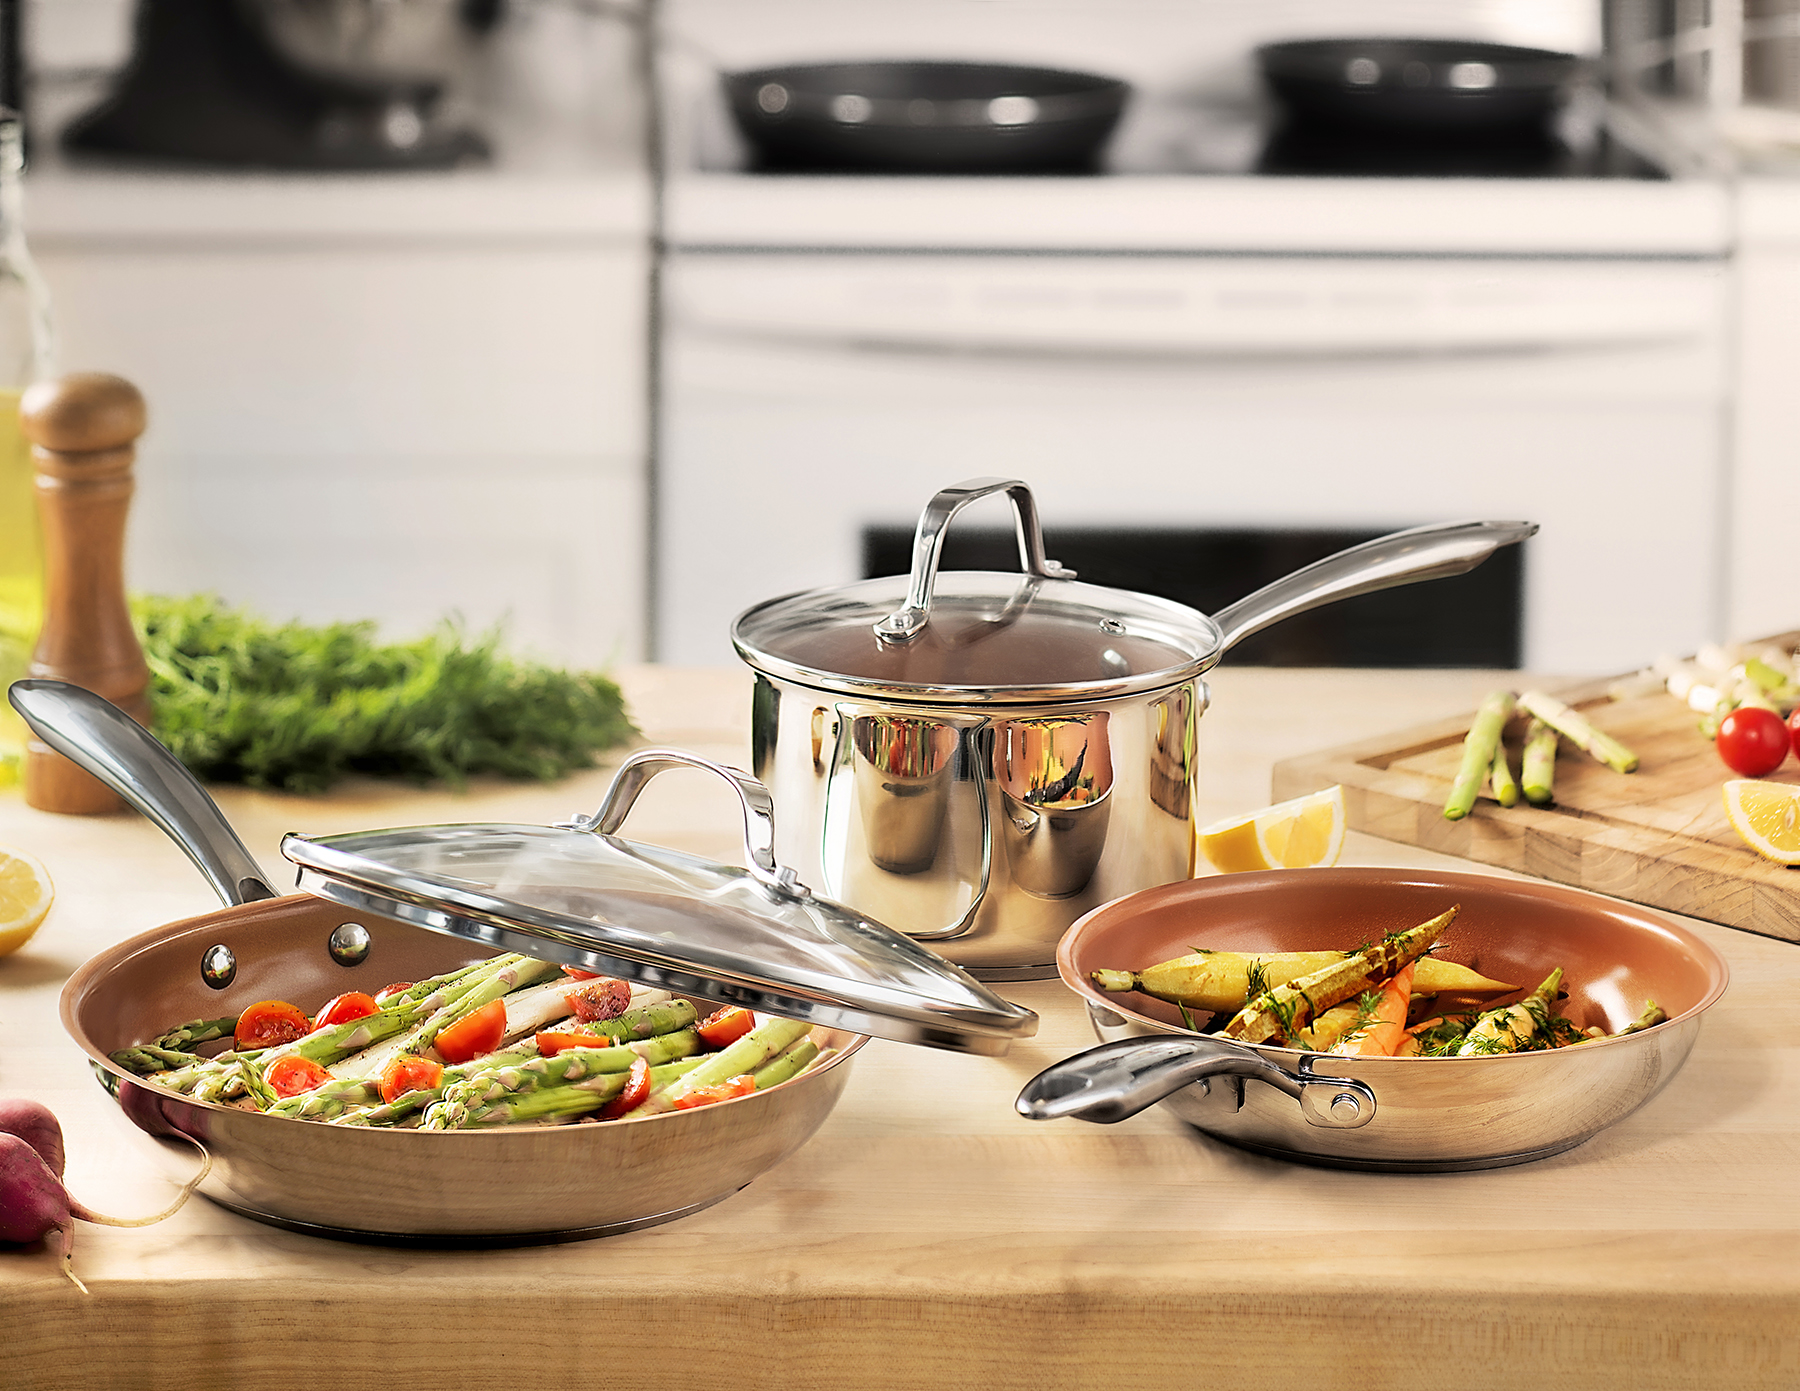 New-york-food-photography-cookware-lifestyle